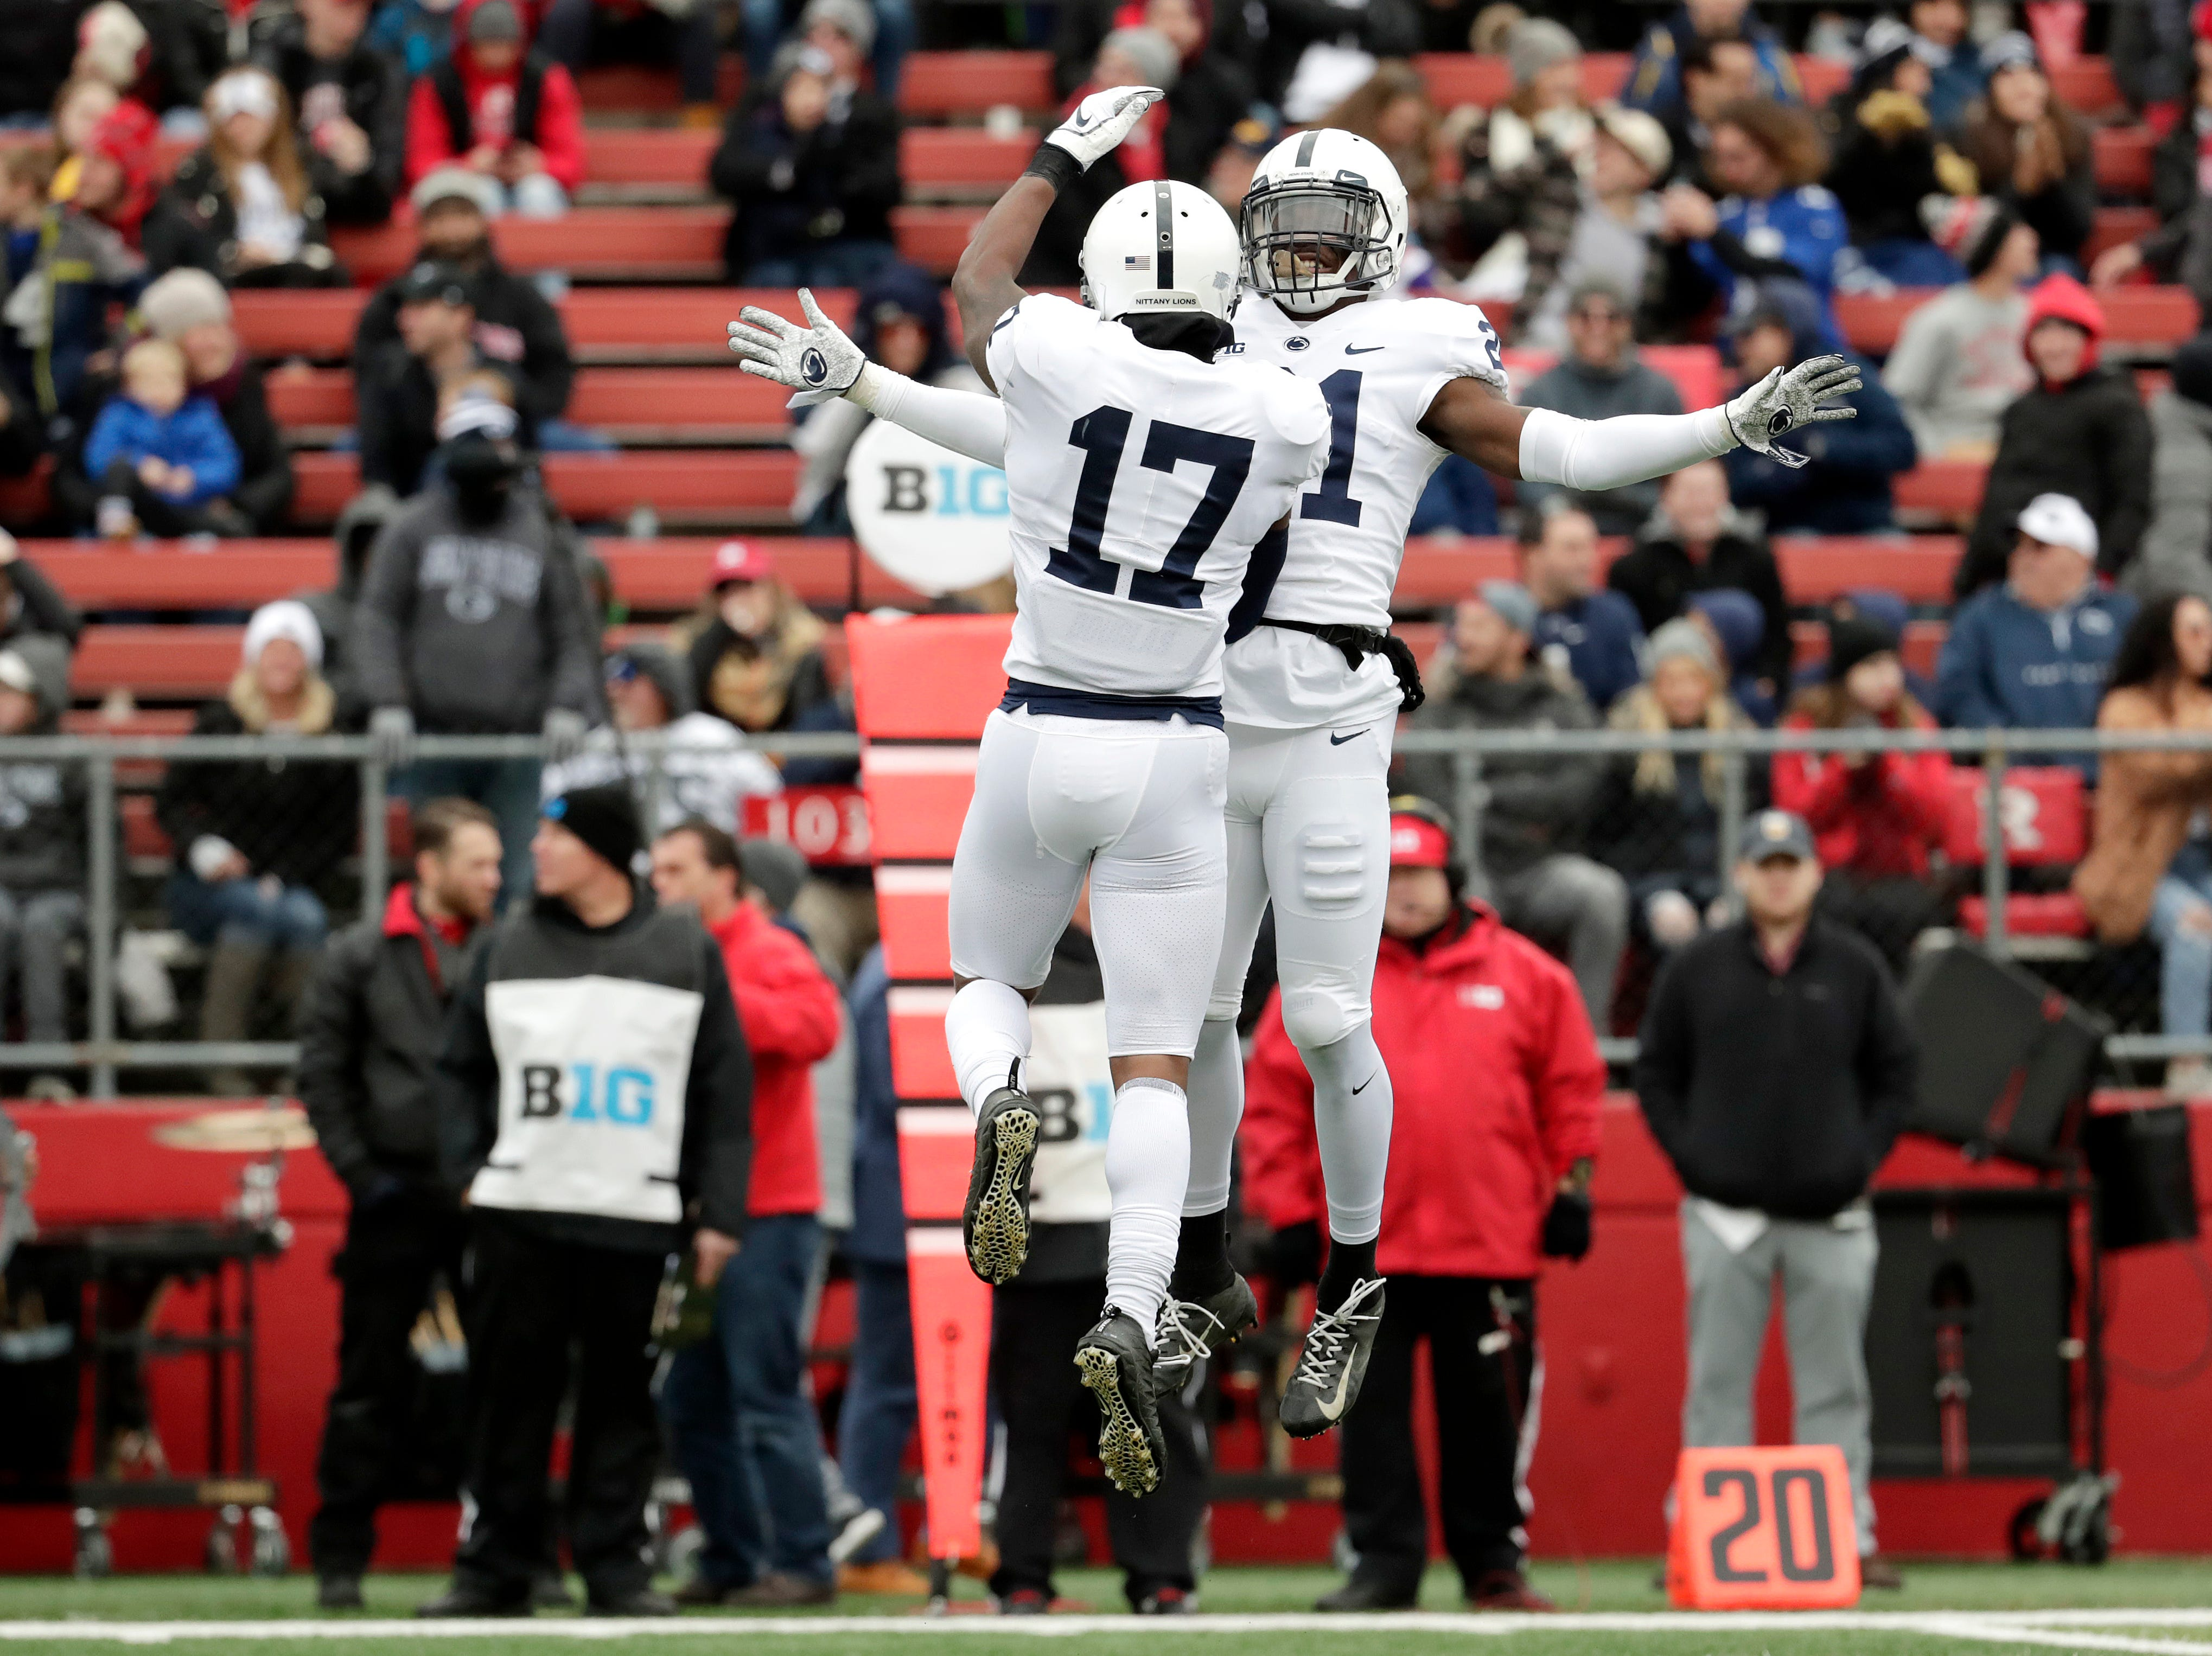 Penn State safety Garrett Taylor (17) celebrates his interception off a pass from Rutgers quarterback Artur Sitkowski, not pictured, with teammate cornerback Amani Oruwariye (21) during the first half of an NCAA college football game, Saturday, Nov. 17, 2018, in Piscataway, N.J. (AP Photo/Julio Cortez)